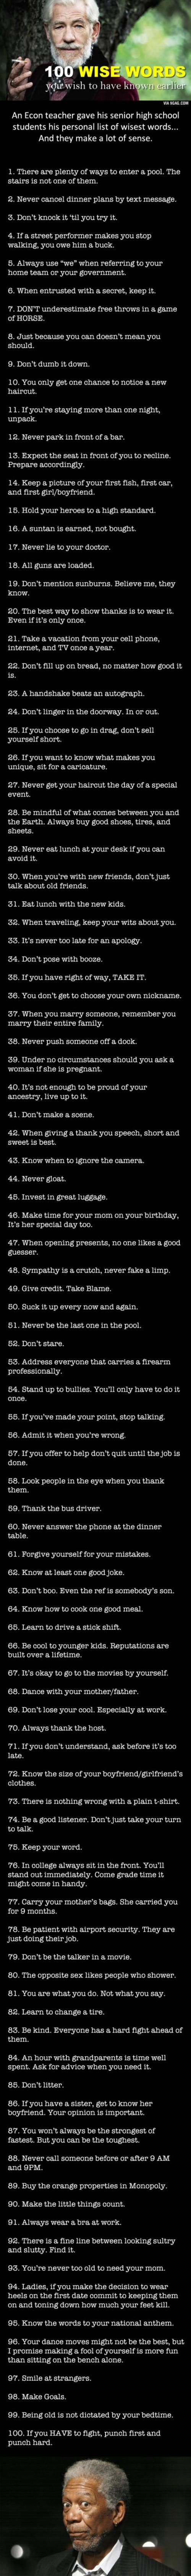 100 wise words